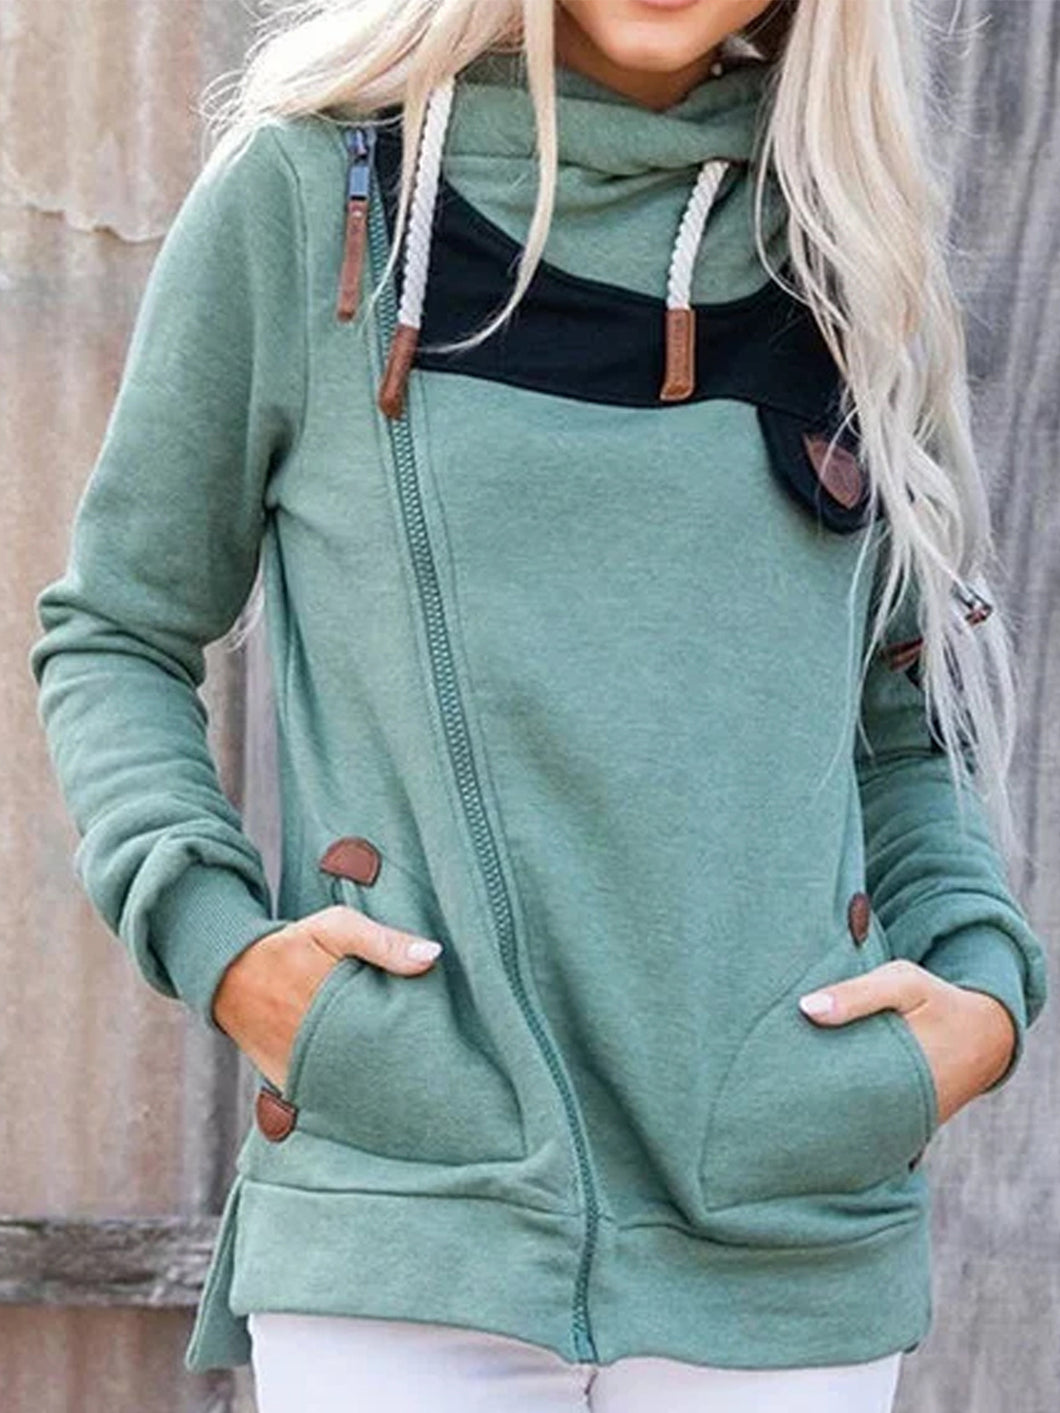 Long Sleeve Pullover Hoodies Irregular Zipper Sweatshirts For Women Cowl Neck Sweatshirts